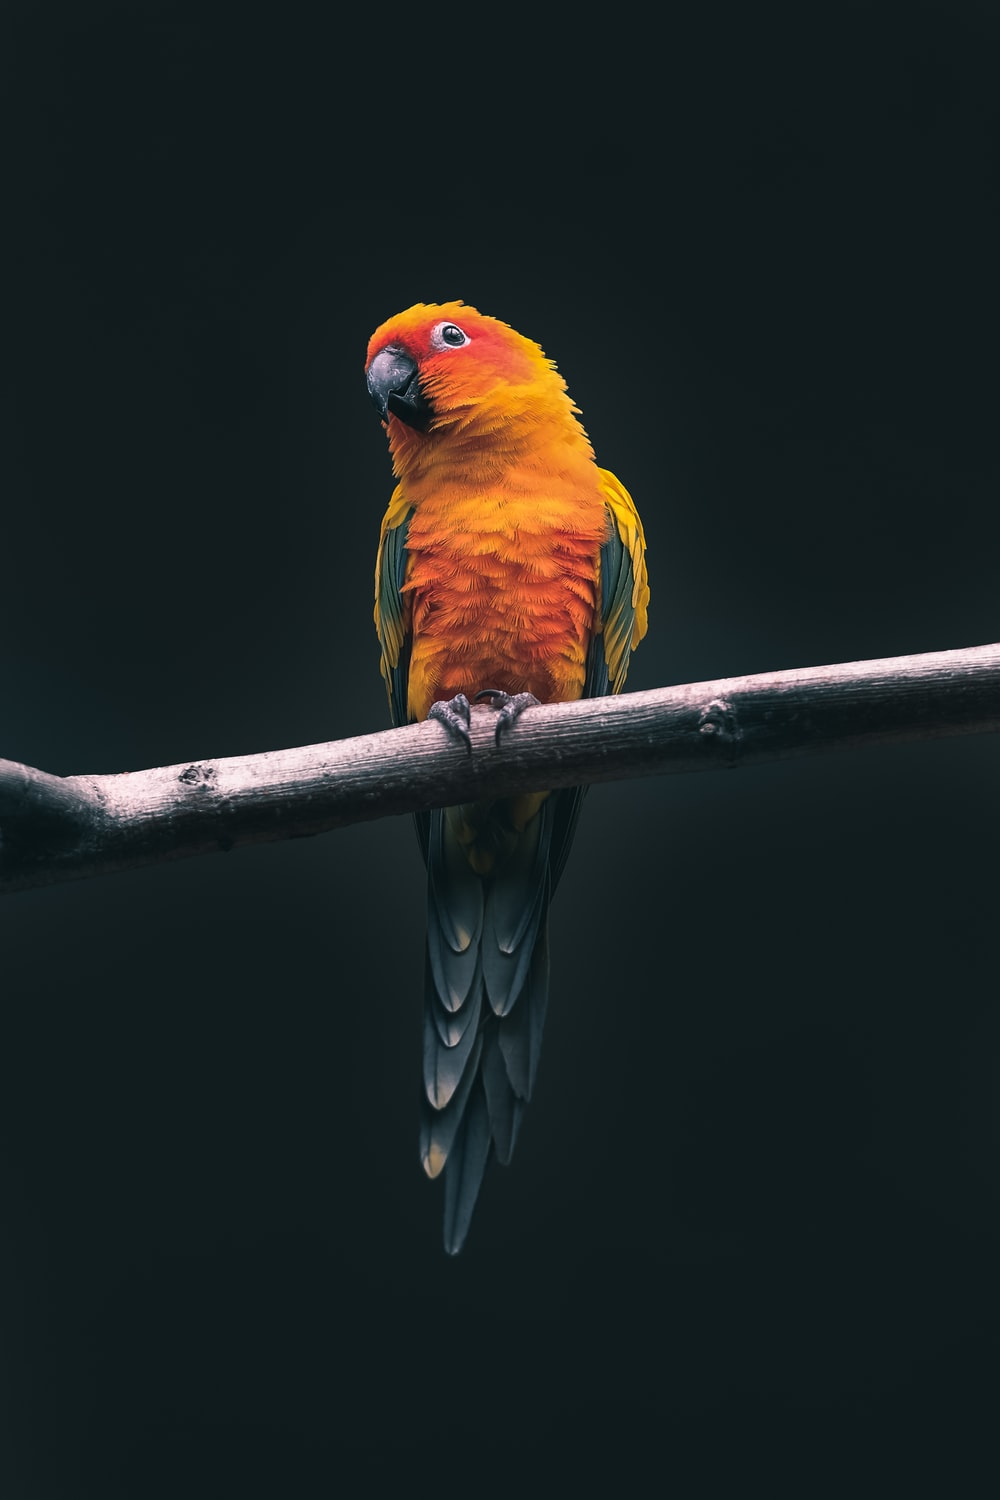 Bird Wallpapers Free Hd Download 500 Hq Unsplash